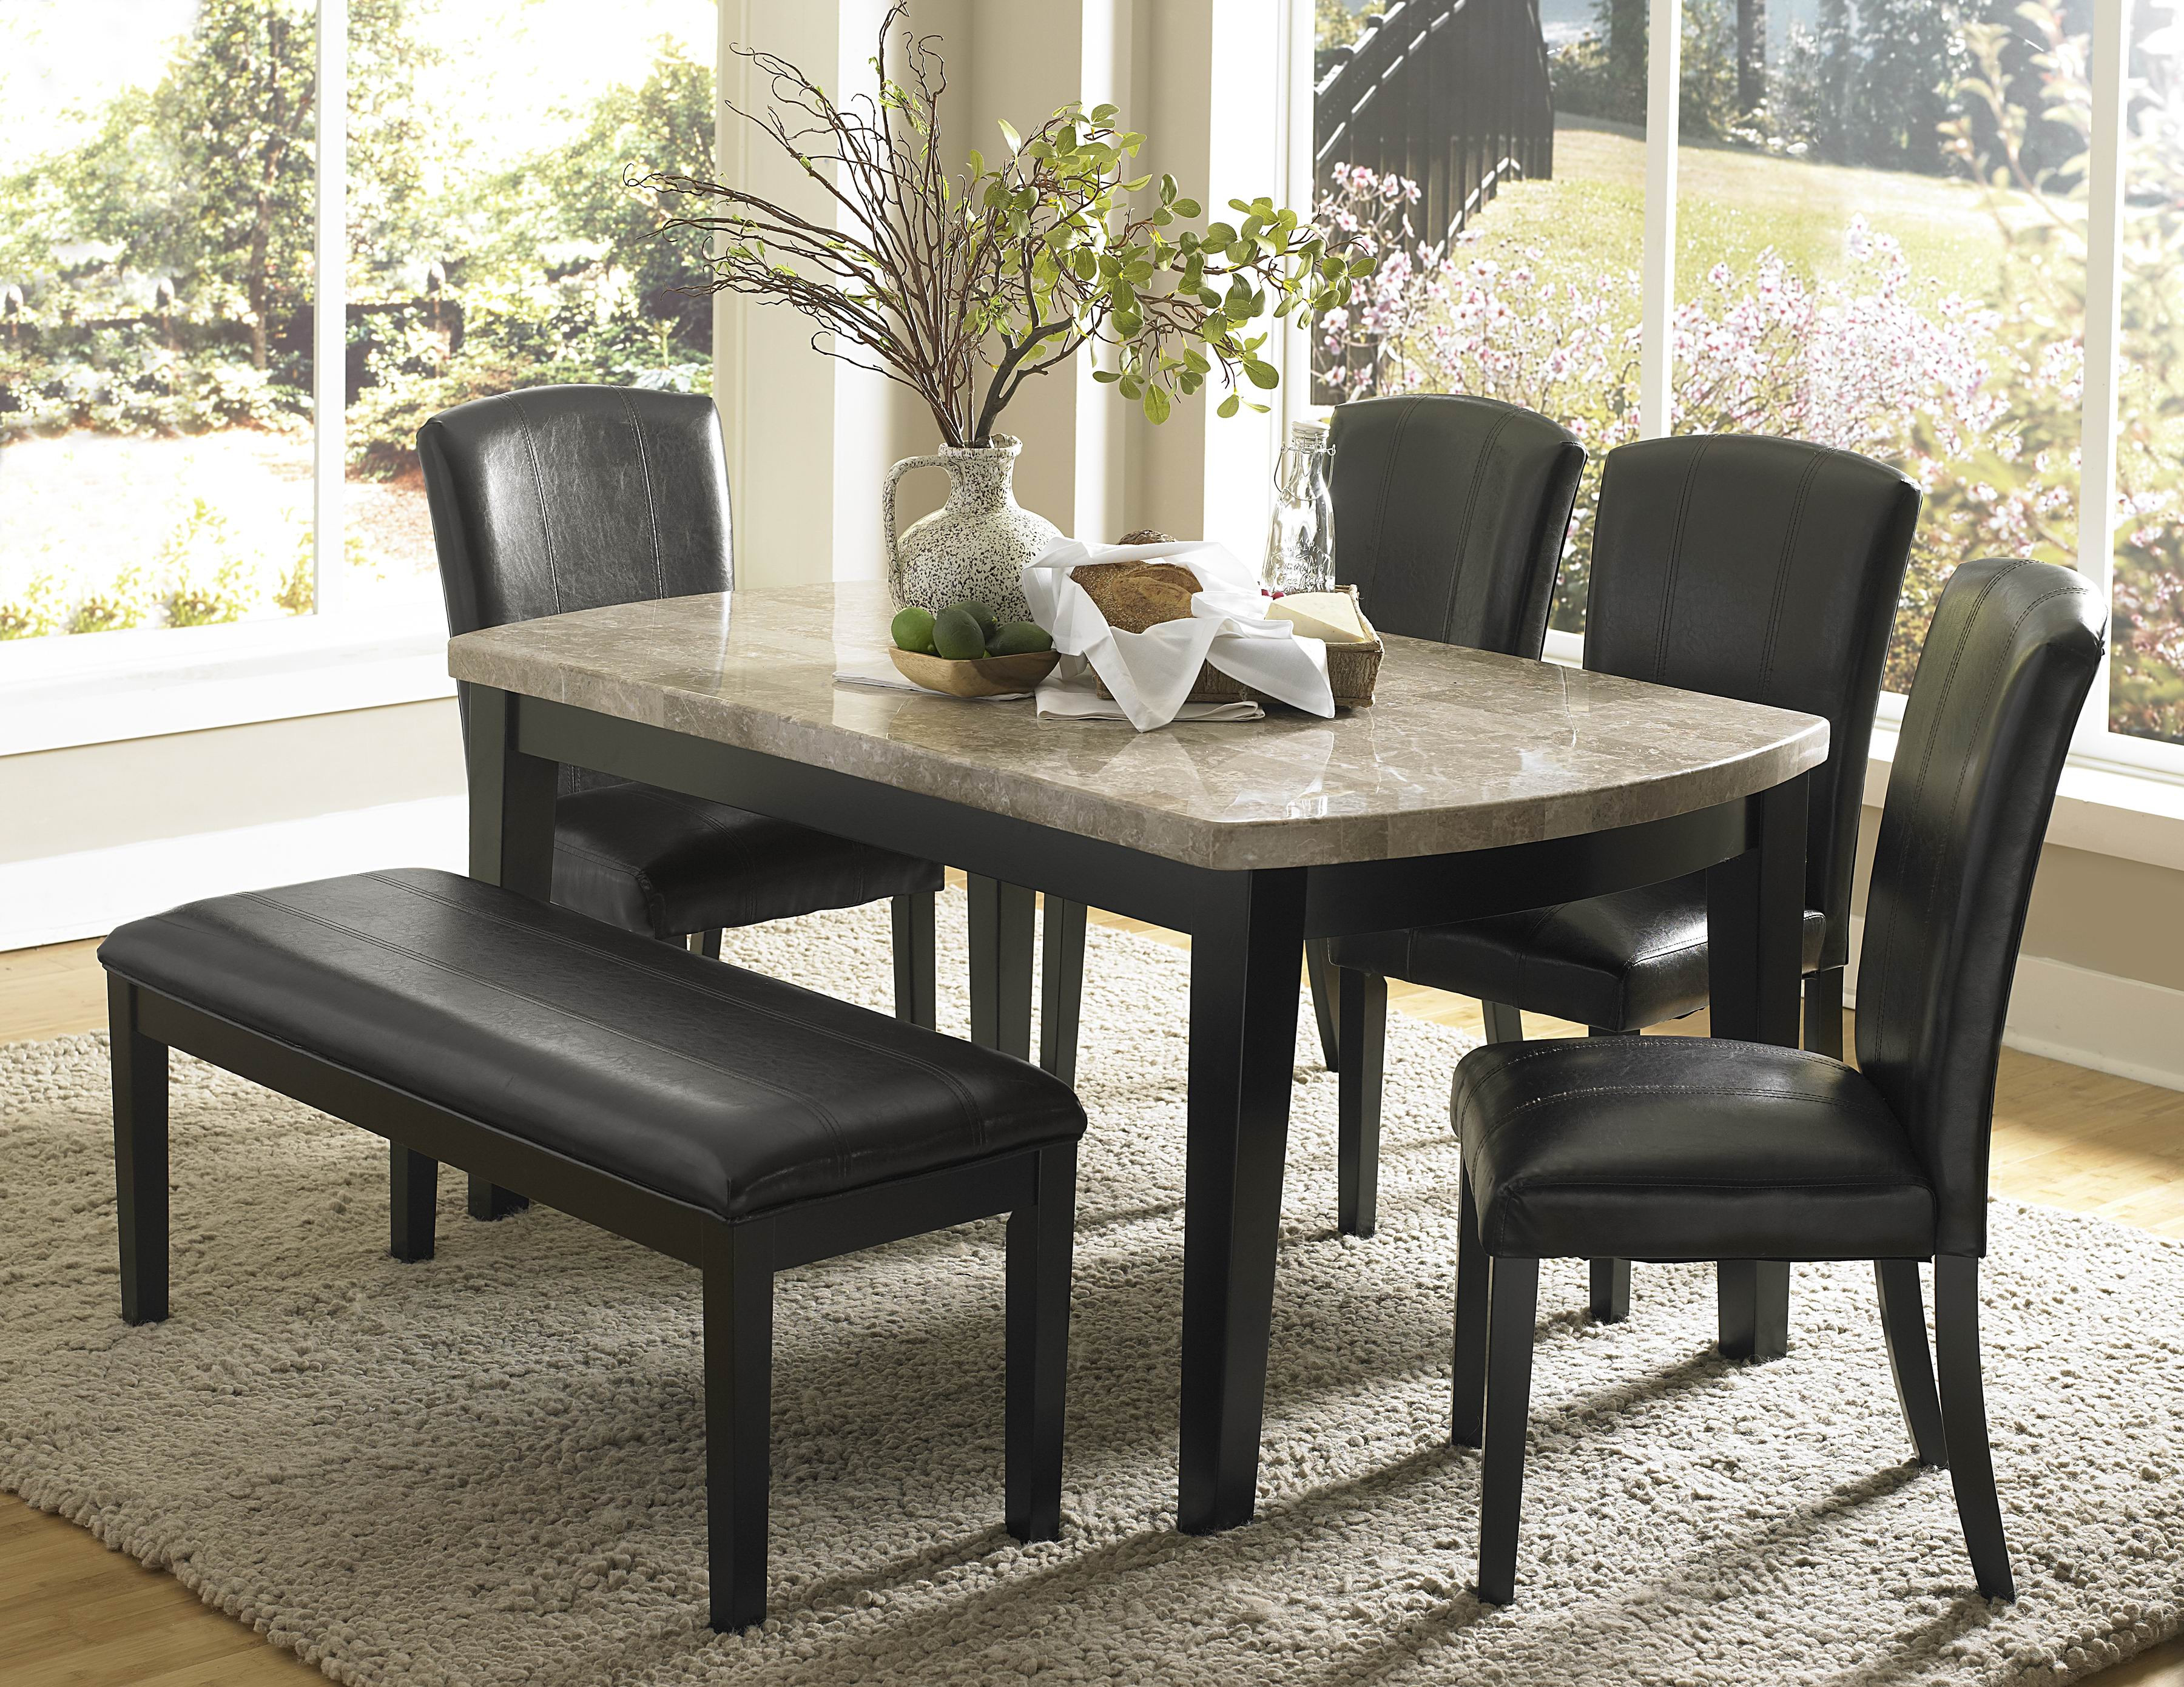 Best ideas about Granite Dining Table . Save or Pin Granite Dining Table Set Now.